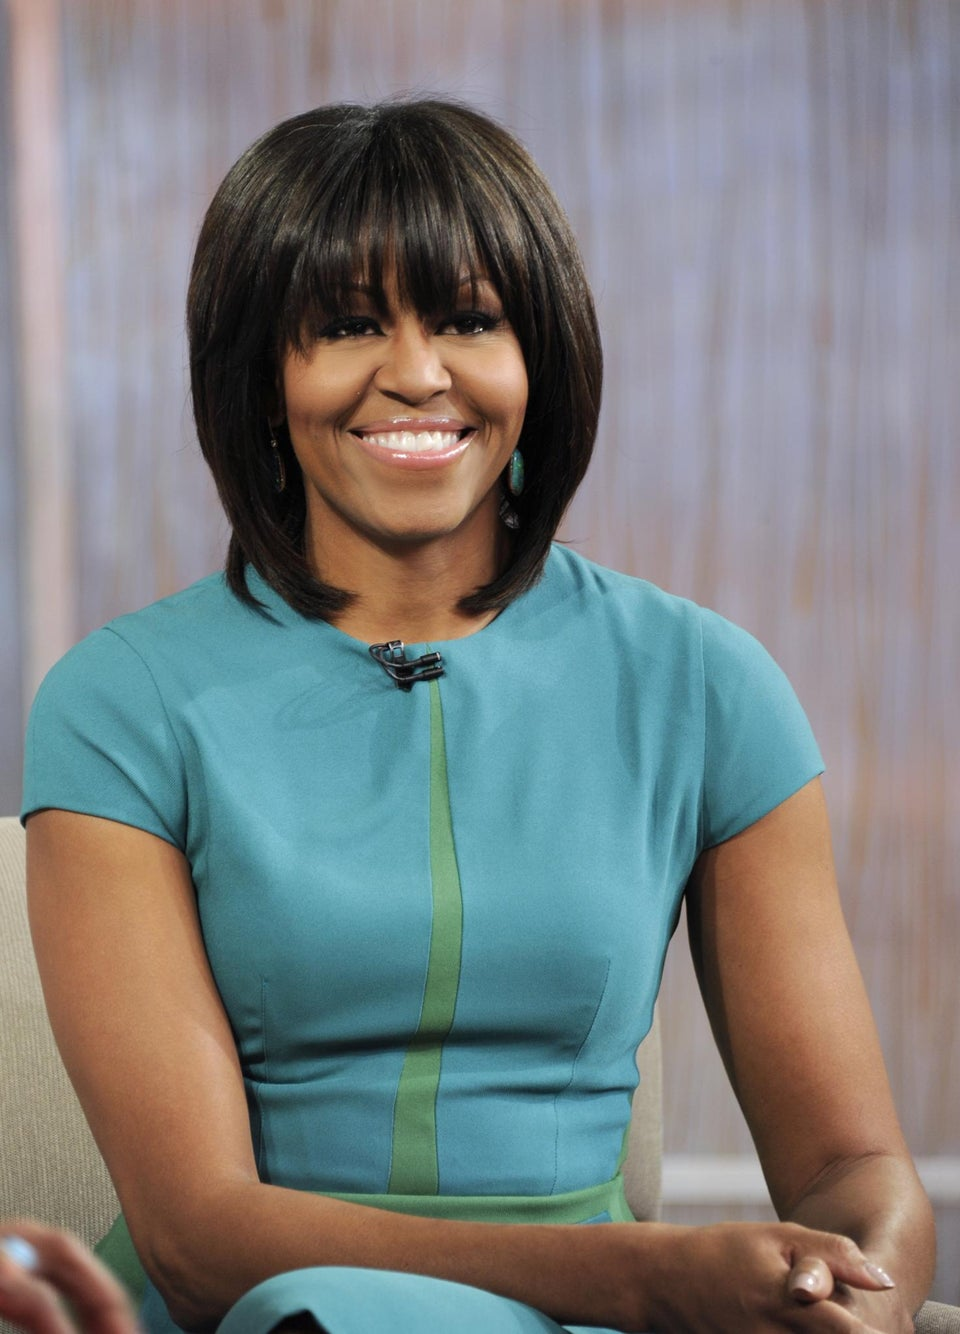 Michelle Obama, Beyoncé Named in TIME 100 Influential List